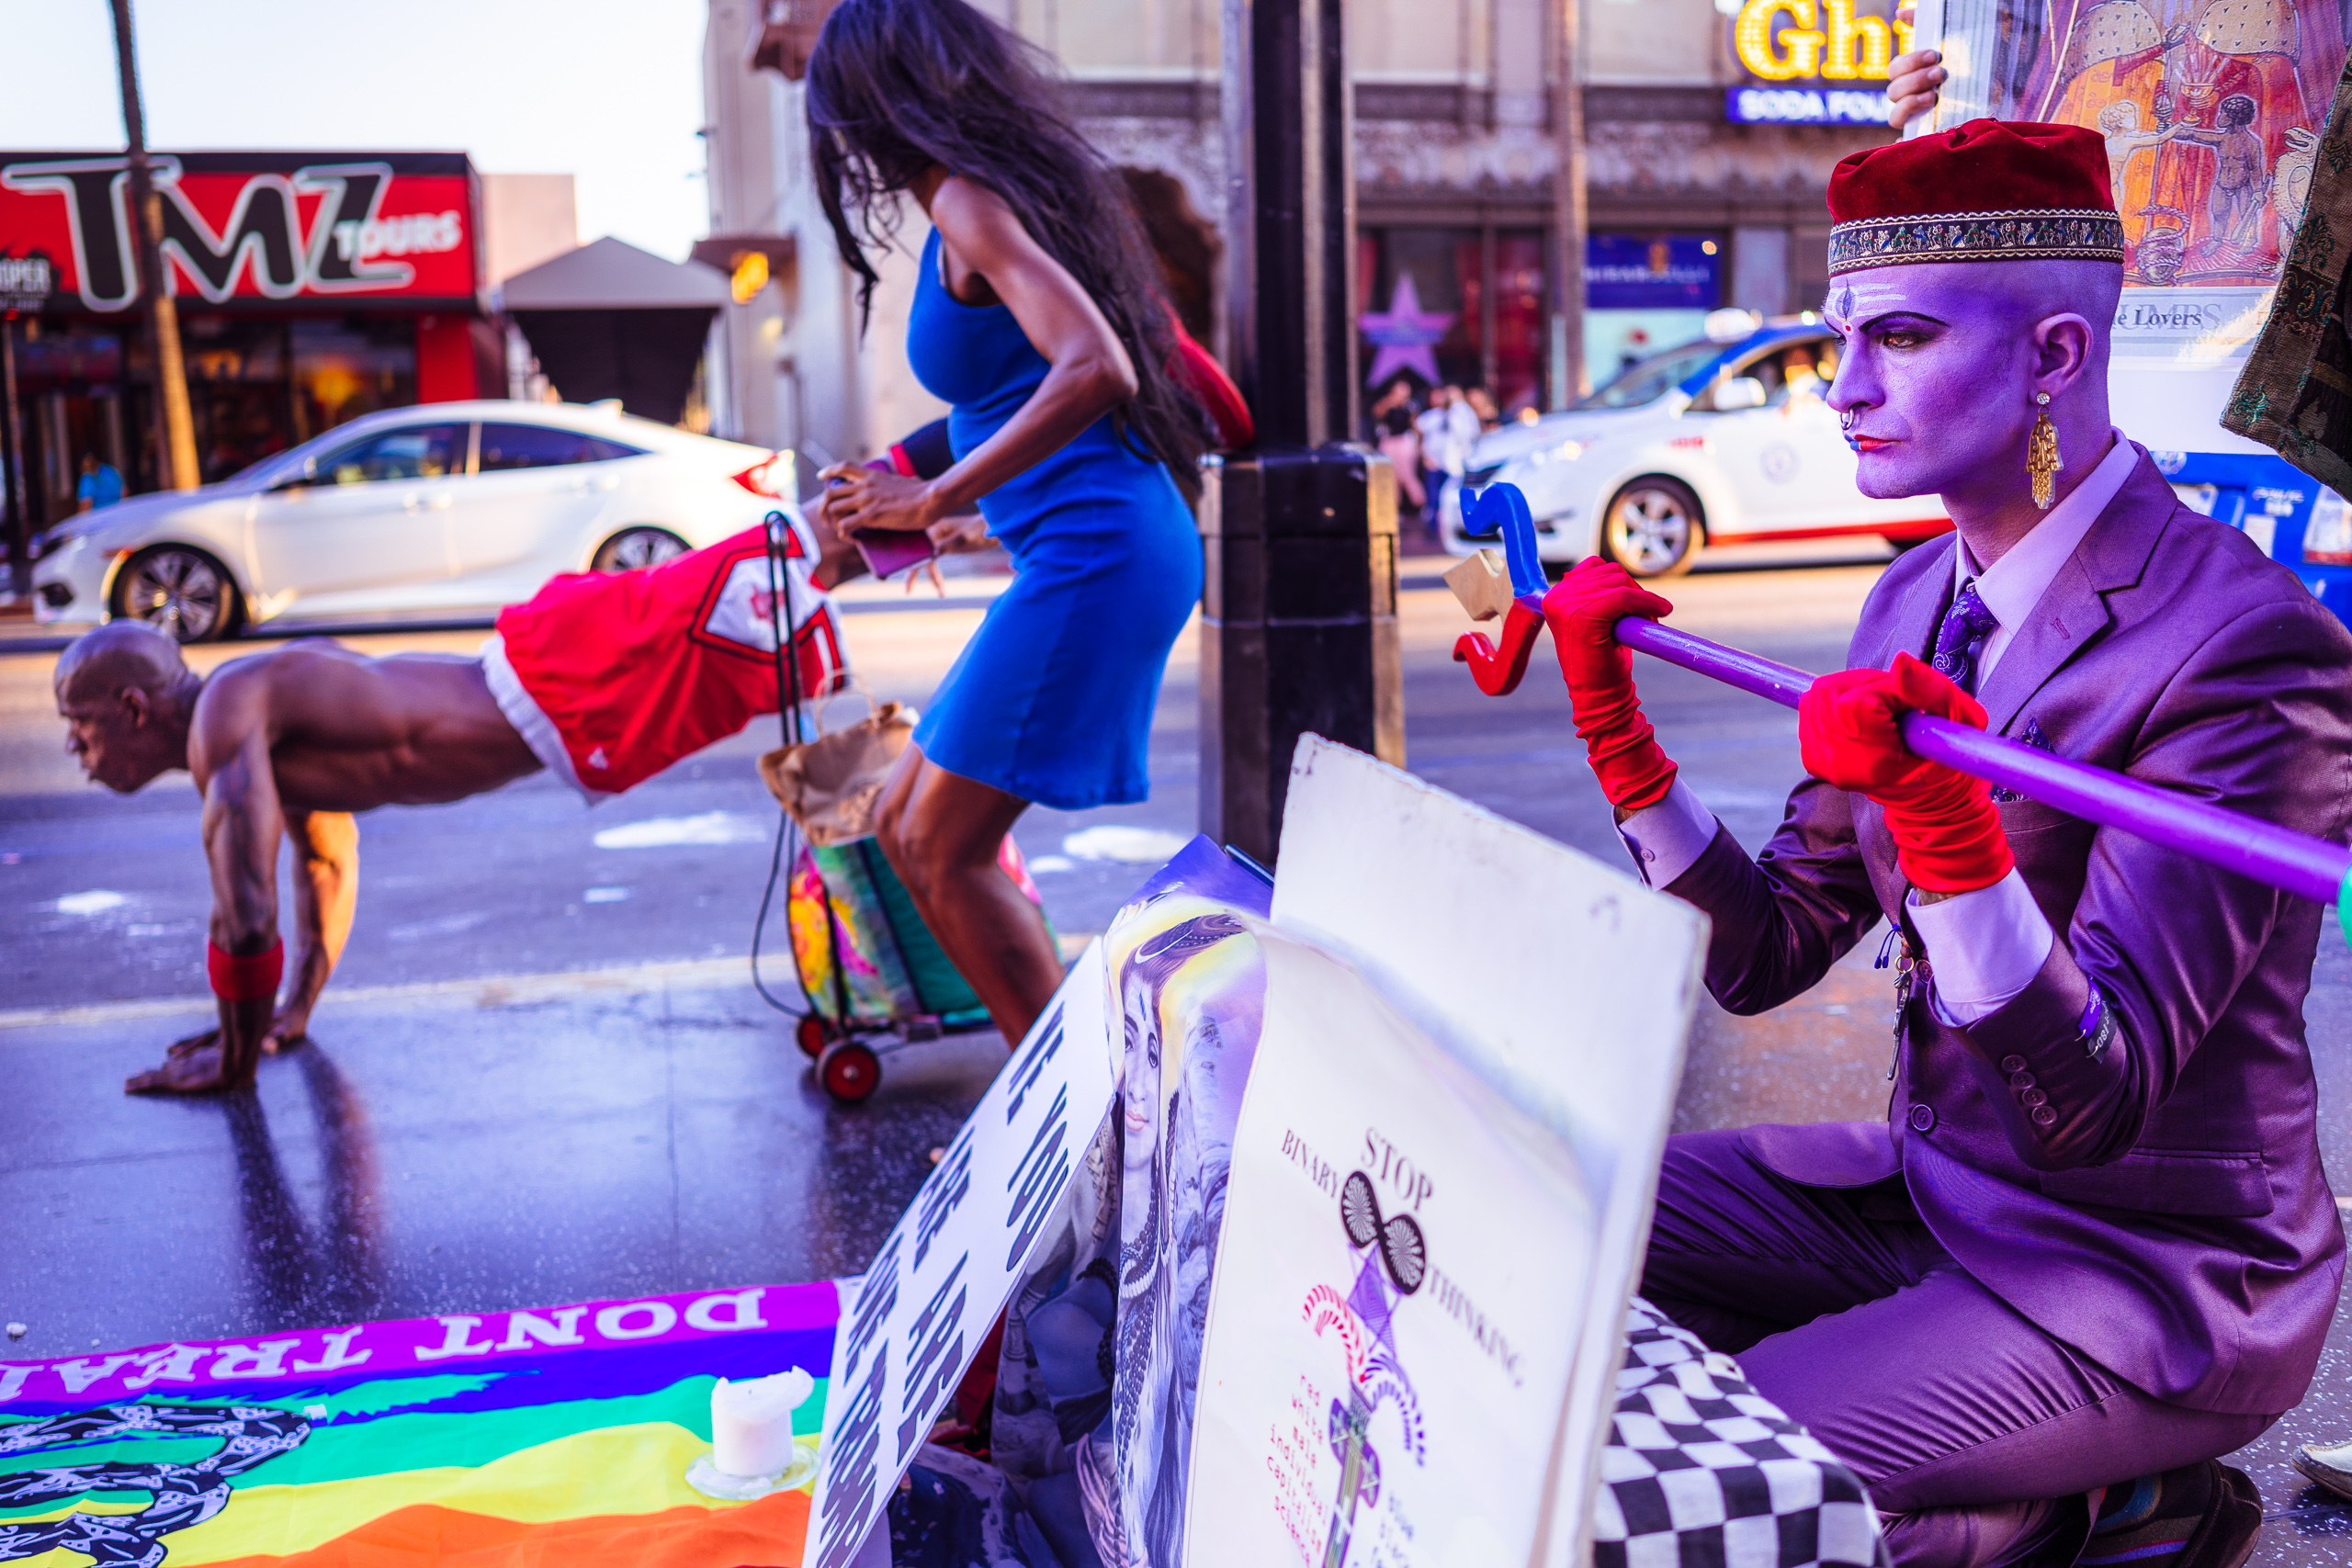 "Activities at Donald Trump's Star on Hollywood Boulevard on Saturday 8 September 2018, featuring a Purple Party performance, ""Shiva NonDuality Mantras @ Hollywood Trump Star"""